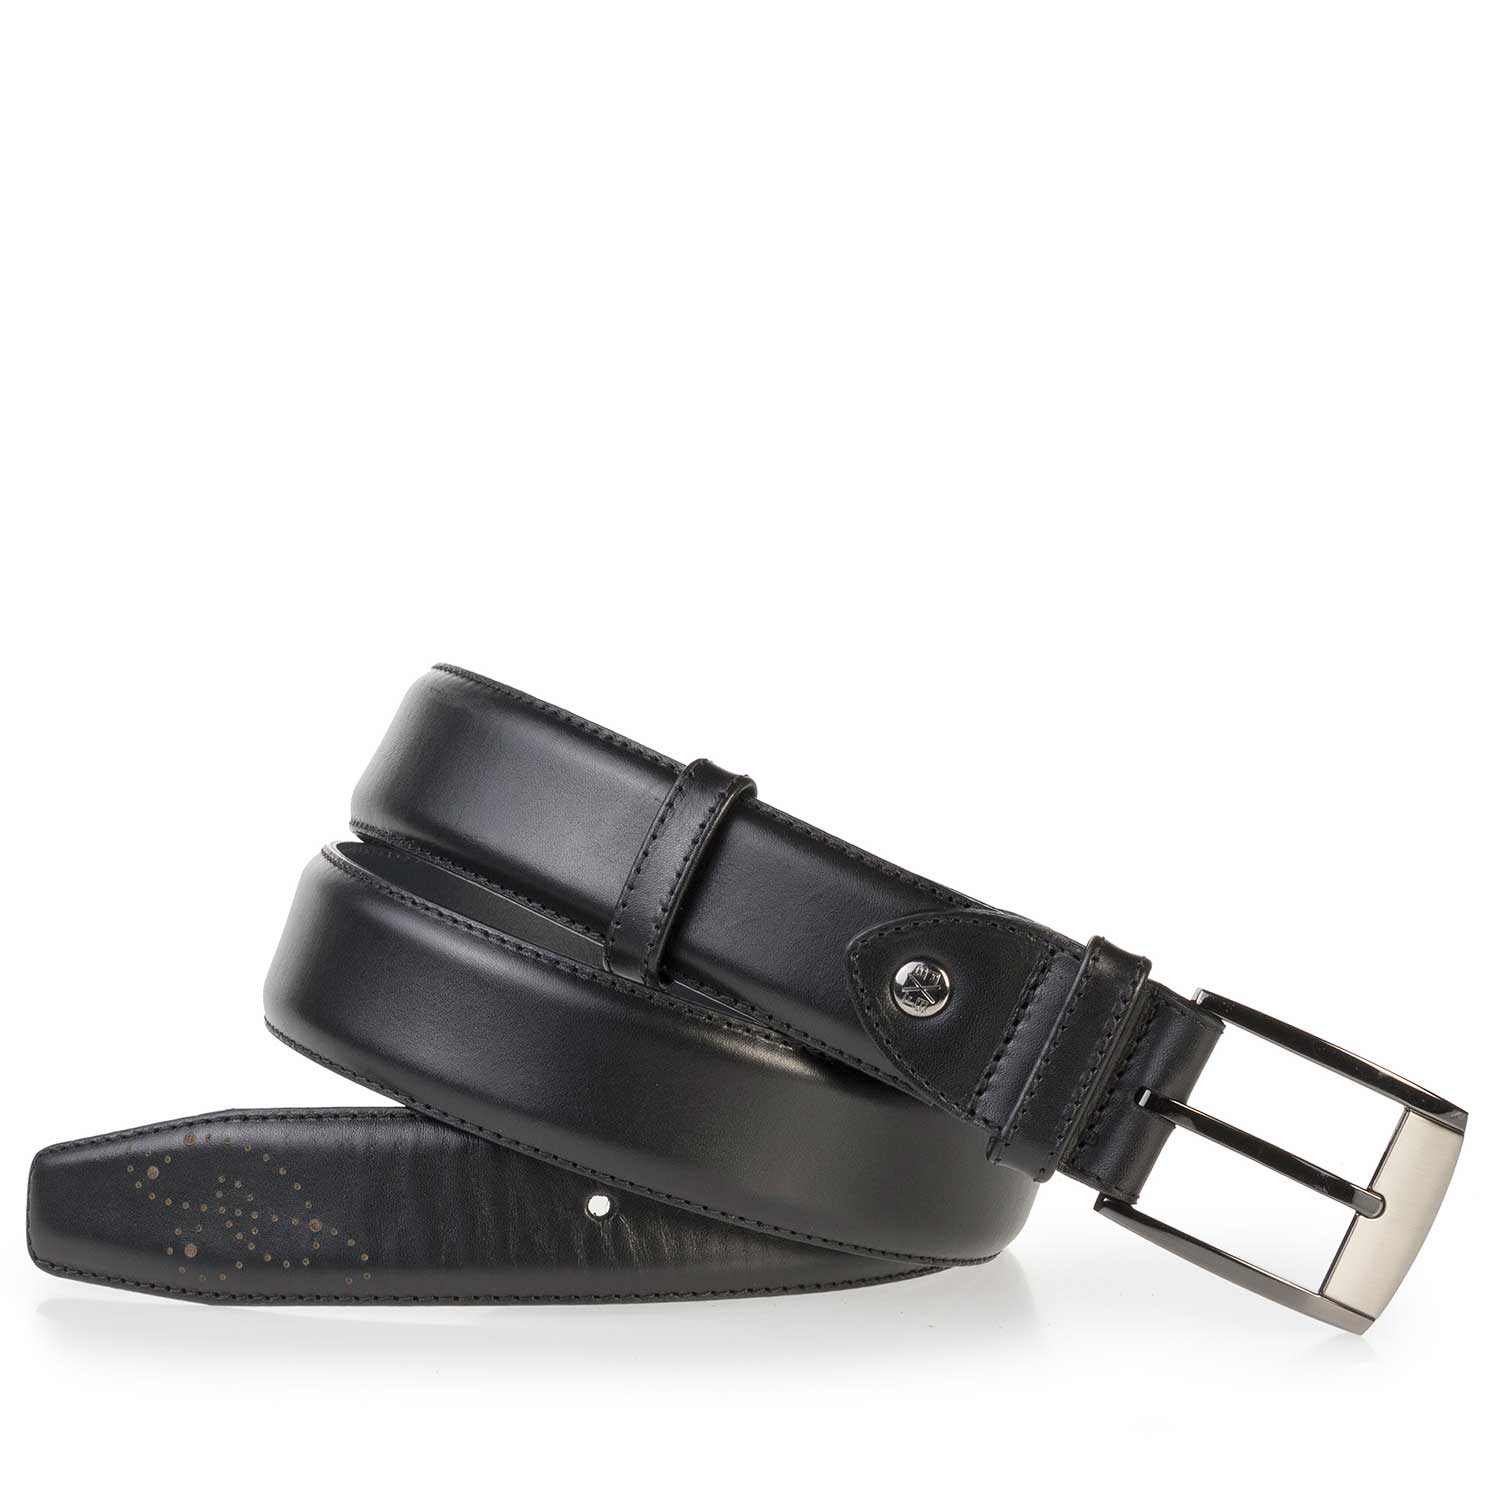 75177/01 - Black, perforated leather belt